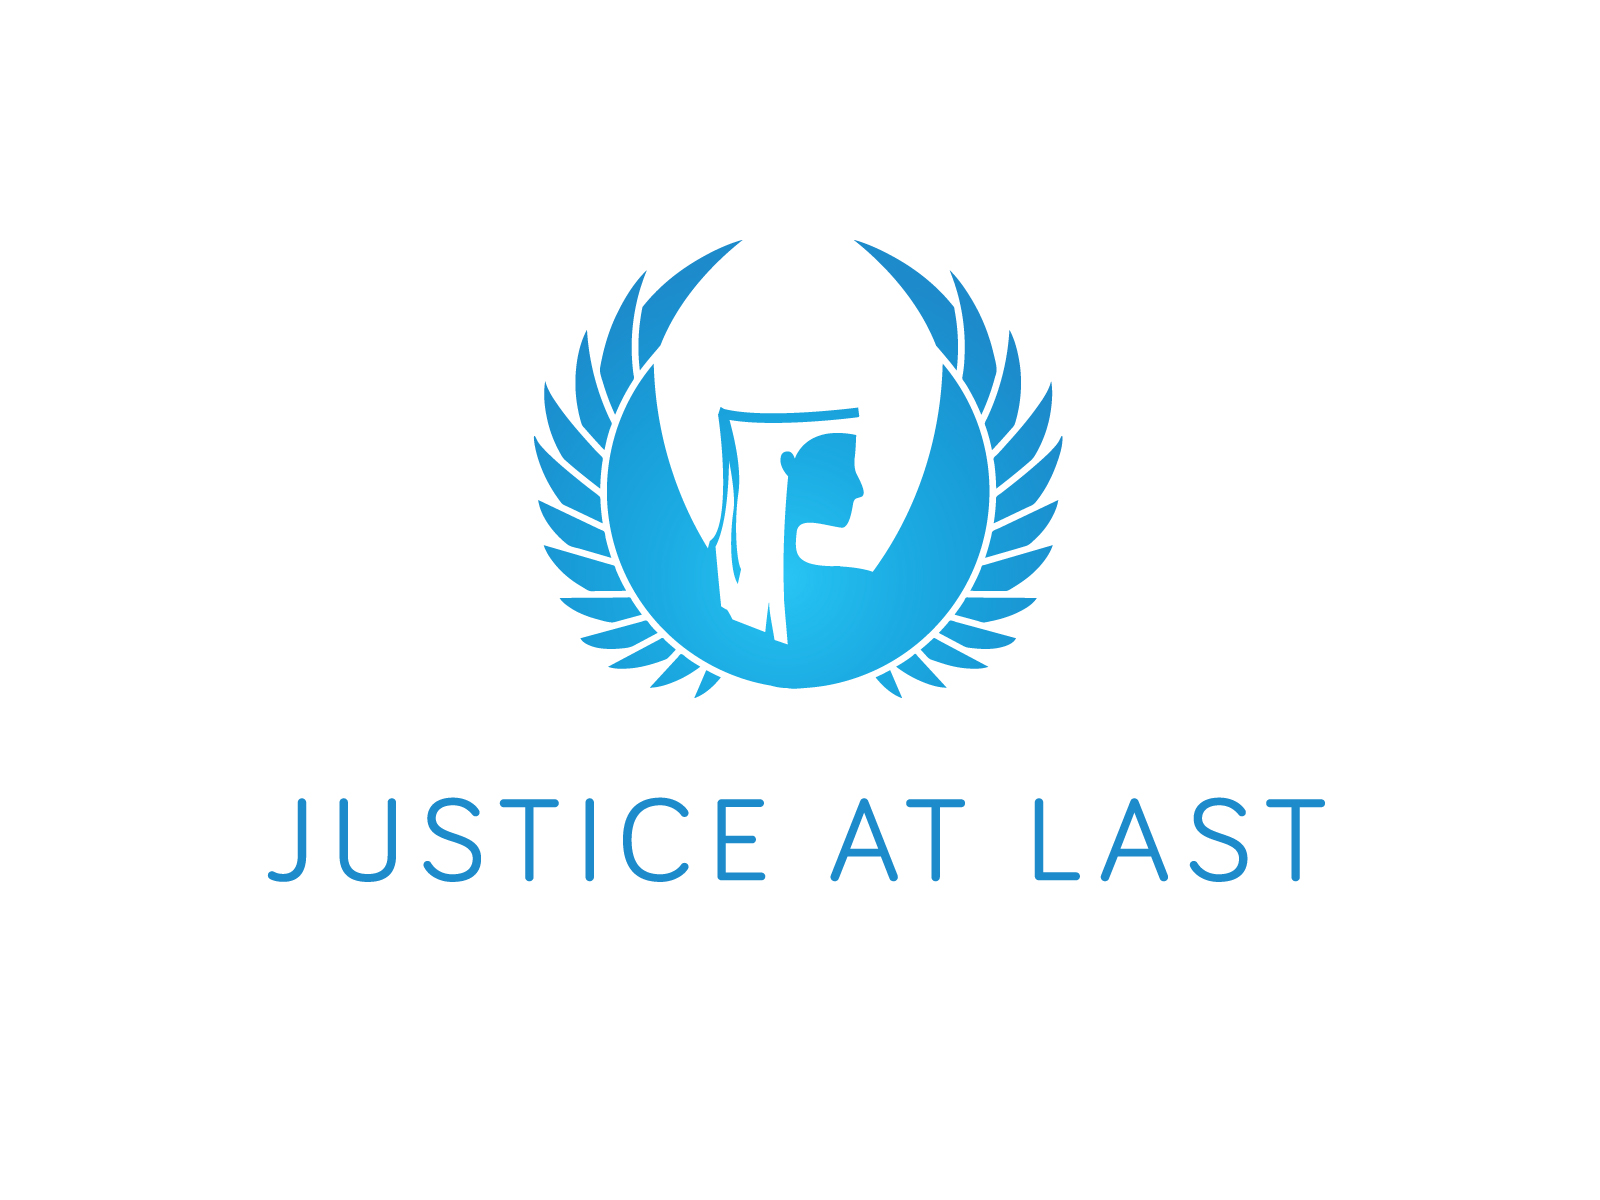 Justice At Last provides free legal services and representation to survivors of human trafficking so that they can seek justice on their own terms.  We are the only independent nonprofit law firm in the San Francisco Bay Area exclusively serving the legal needs of survivors, regardless of their age, gender identity, nationality or type of trafficking.  Justice At Last provides free legal representation that emphasizes dignity and is survivor-centered, culturally sensitive, trauma informed, and rights-based.  Our specialization includes asserting the rights of crime victims, clearing criminal records of survivors, protecting parental rights, immigration relief and identity theft recovery.